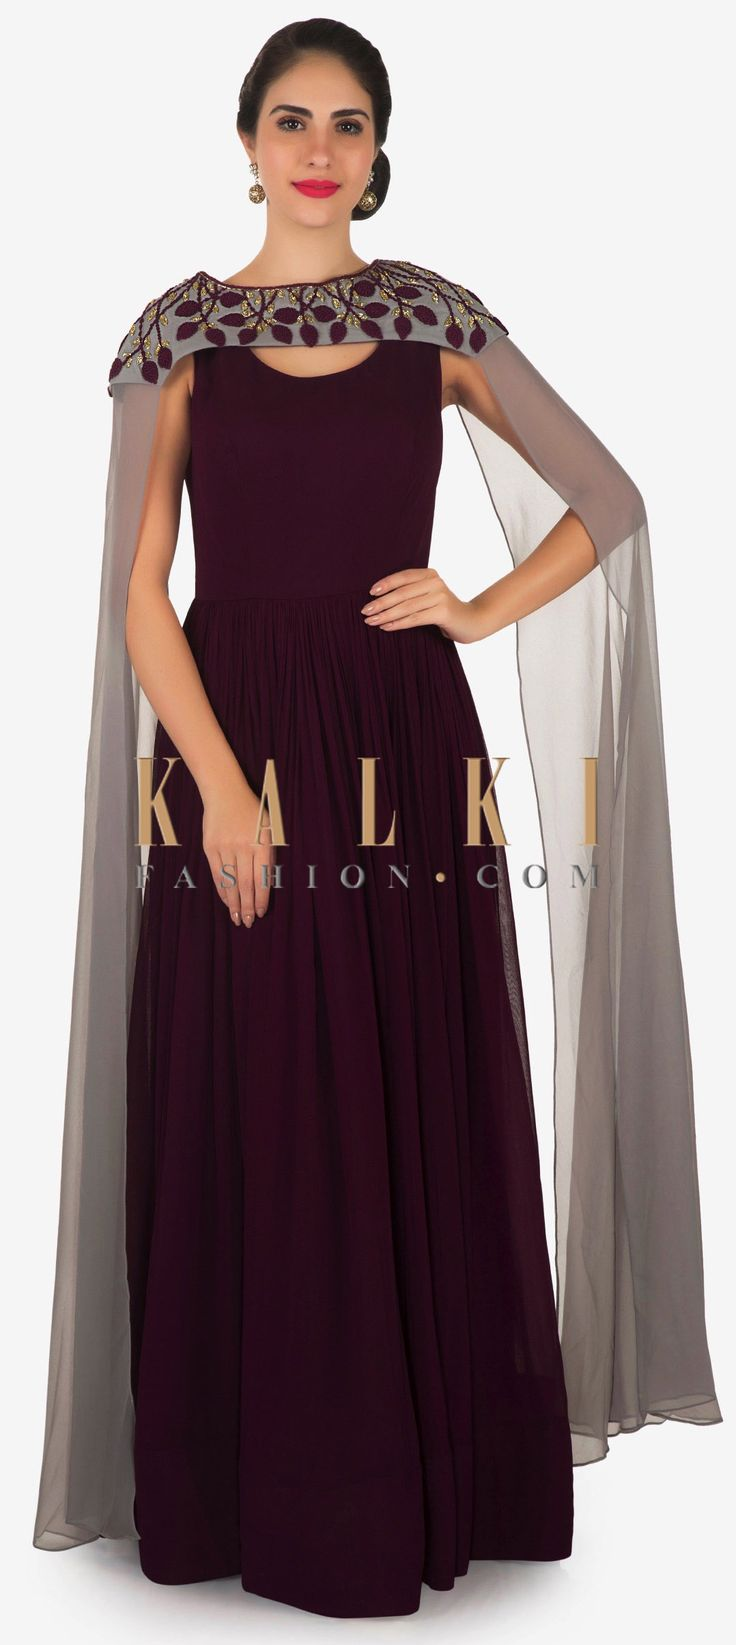 Buy Online from the link below. We ship worldwide Click Anywhere to Tag Burgundy anarkali suit in georgette with french knot embroidered fancy cape only on Kalki   Burgundy anarkali suit featuring in georgette. Matched with fancy cape in long sleeve embellished in french knot embroider. Slight variation in color is possible.